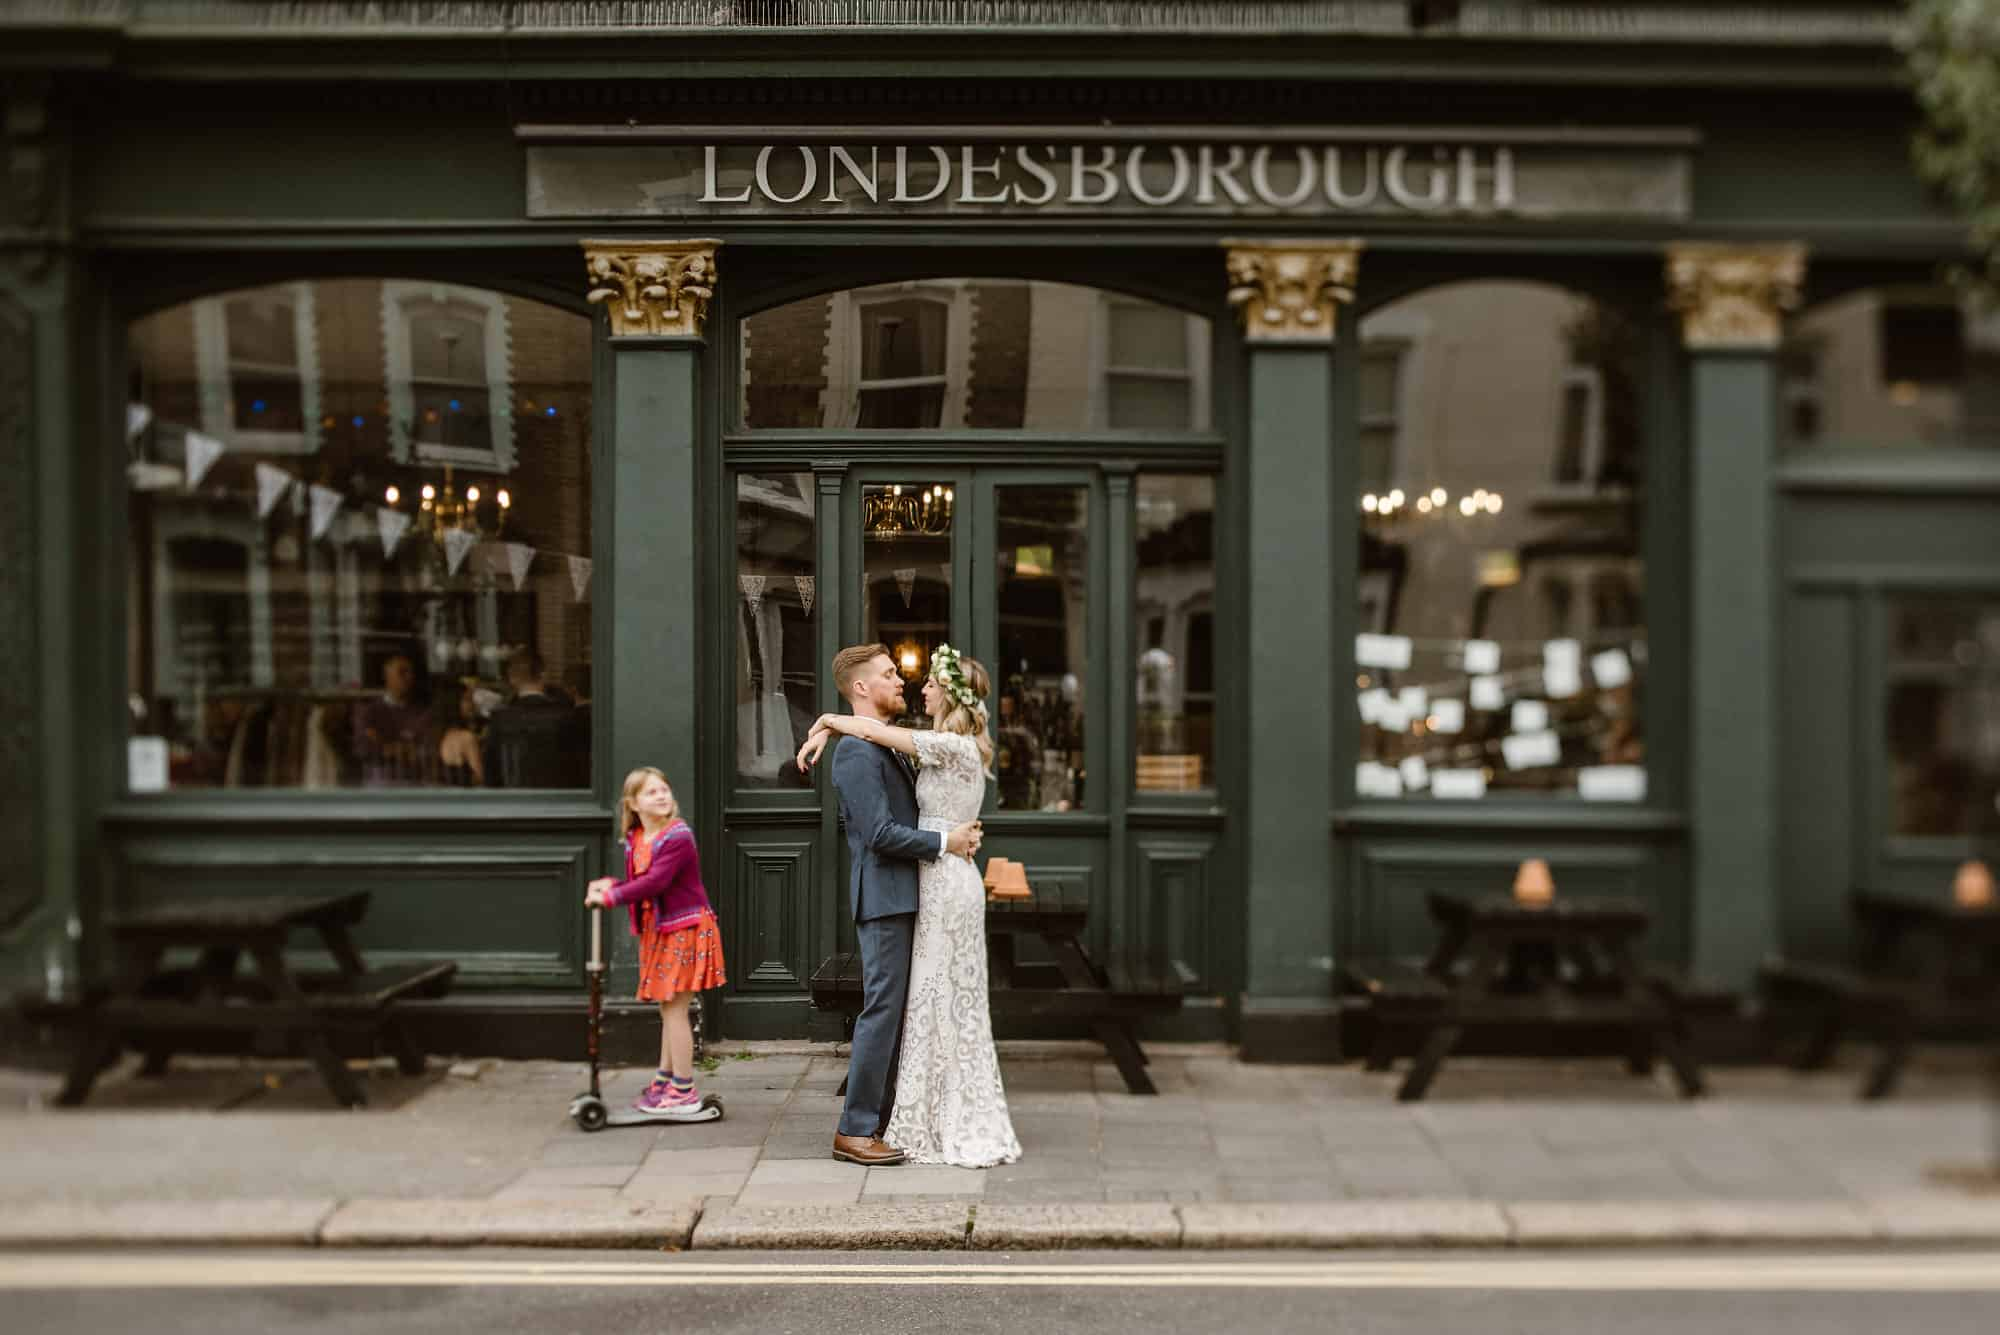 Wedding photography The Londesborough